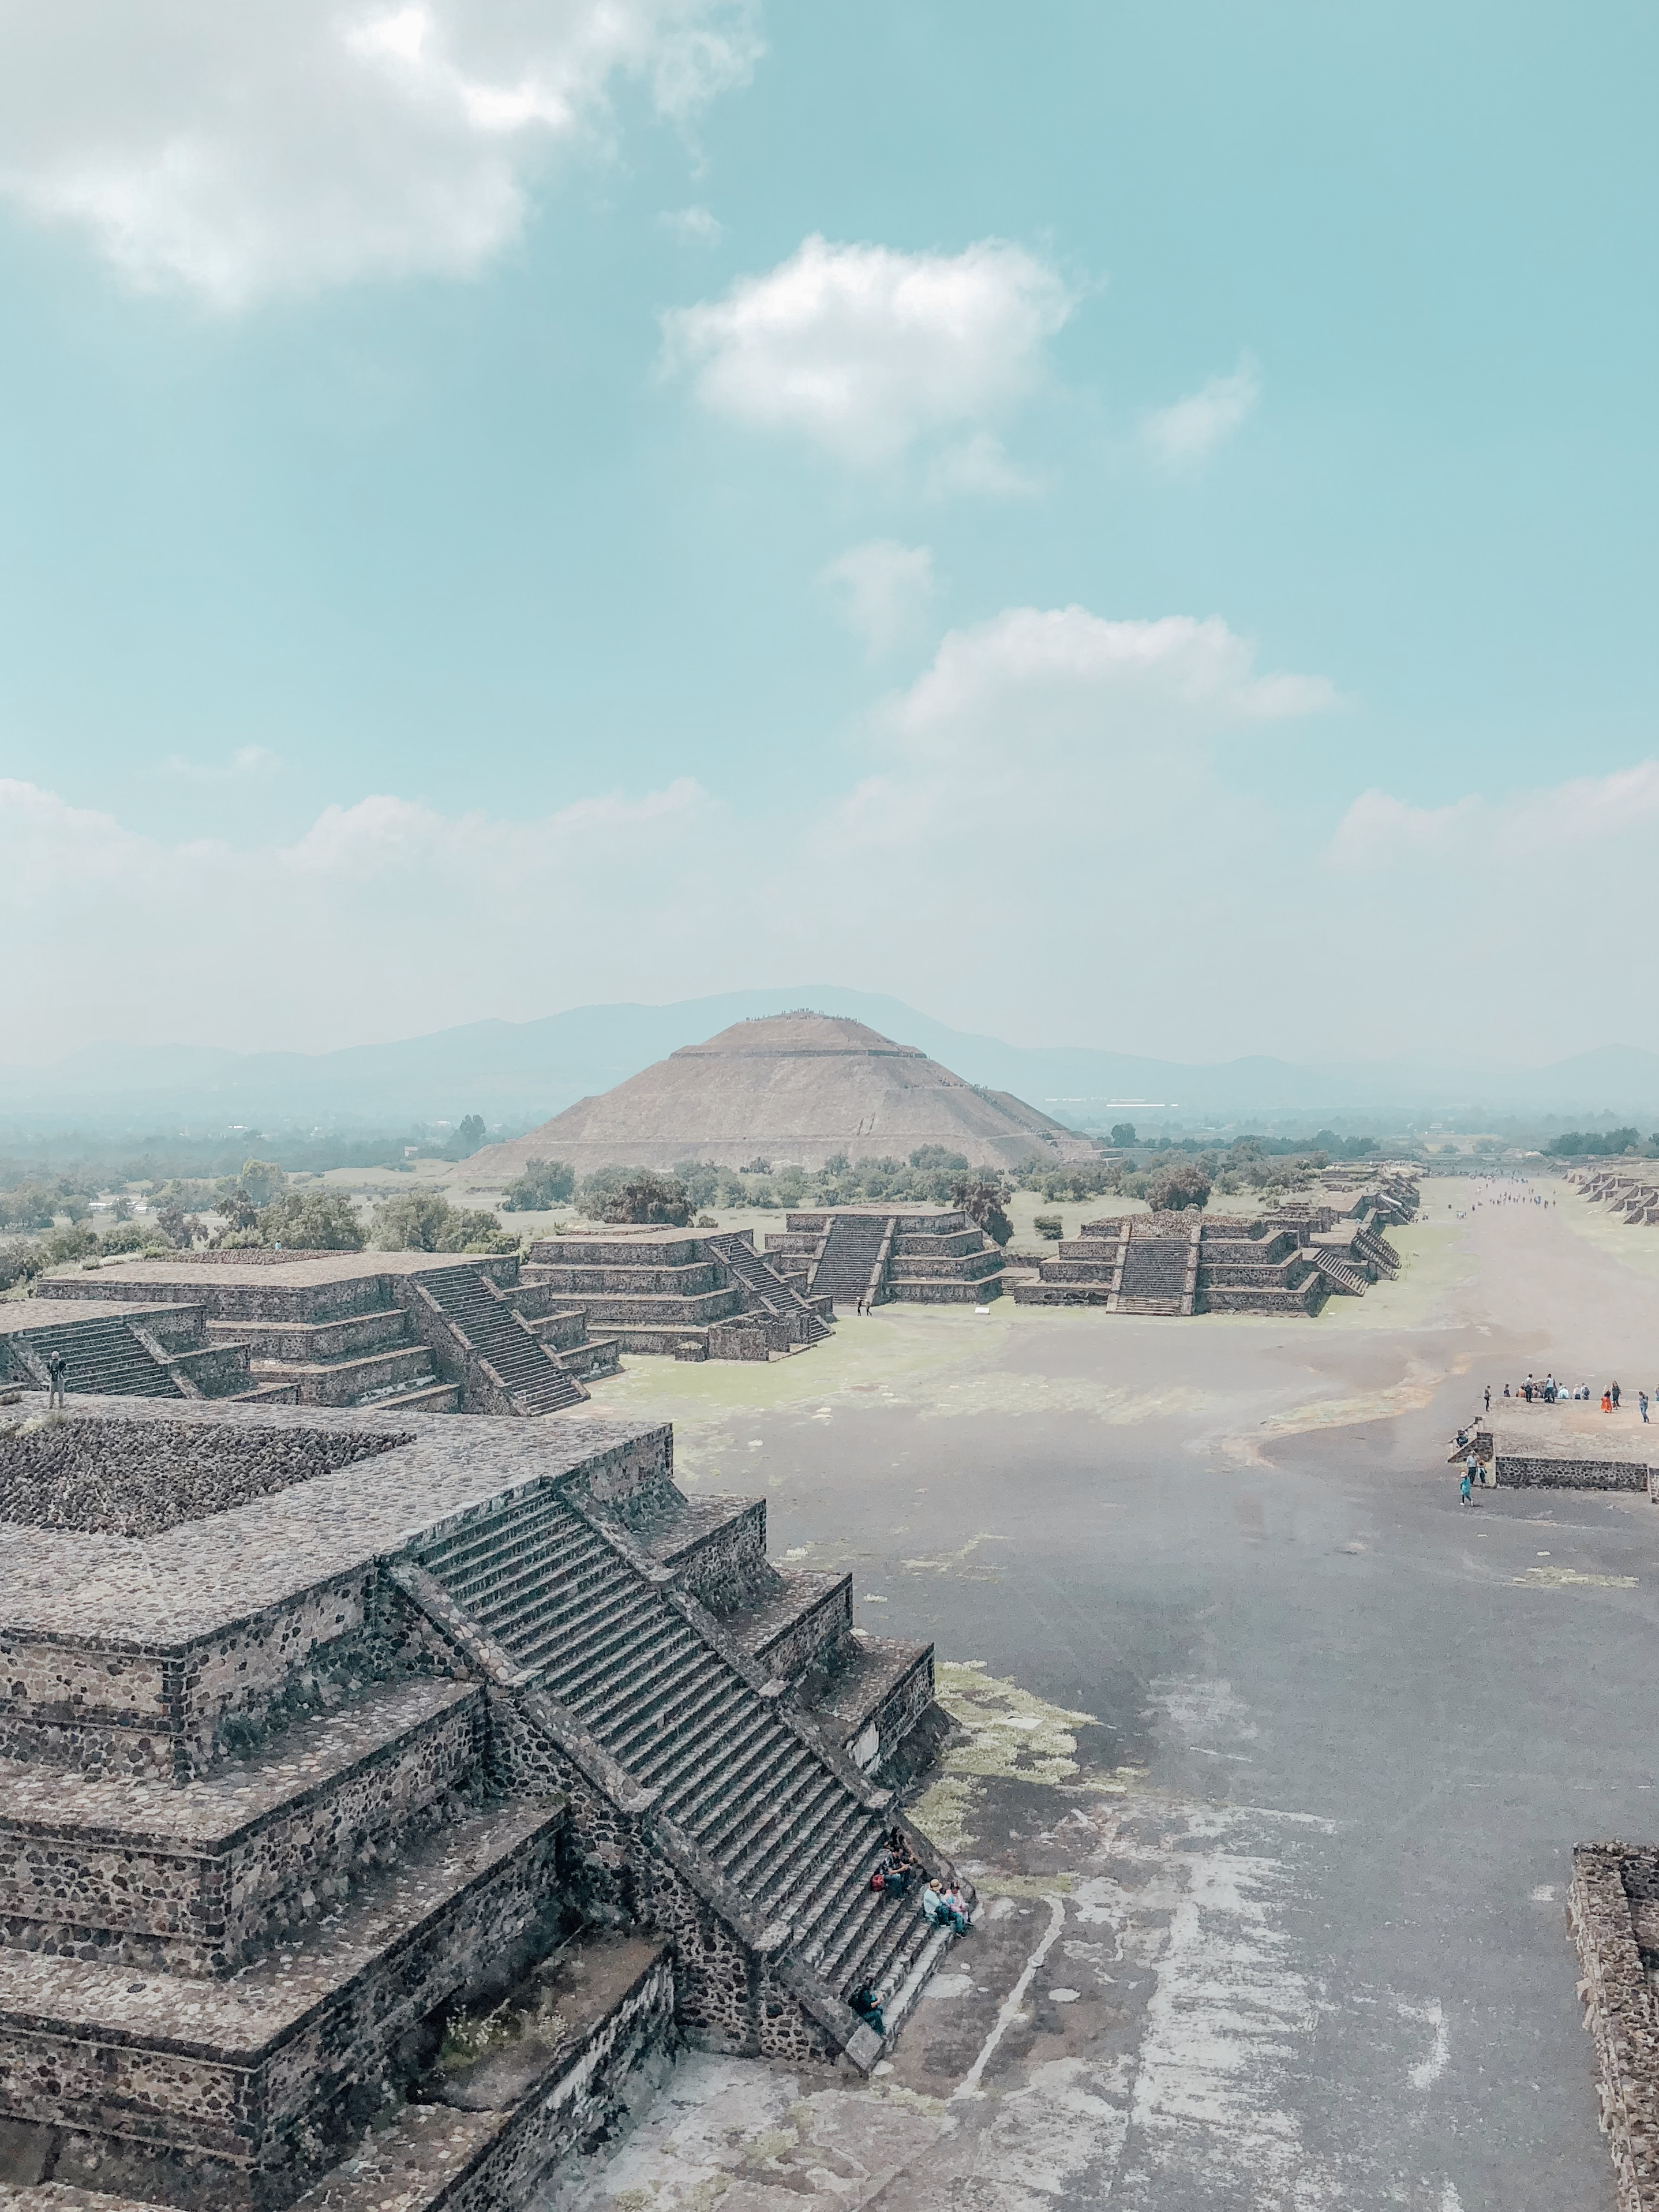 Teotihuacan Pyramids Mexico Travel Tips Outfit Primetime Chaos